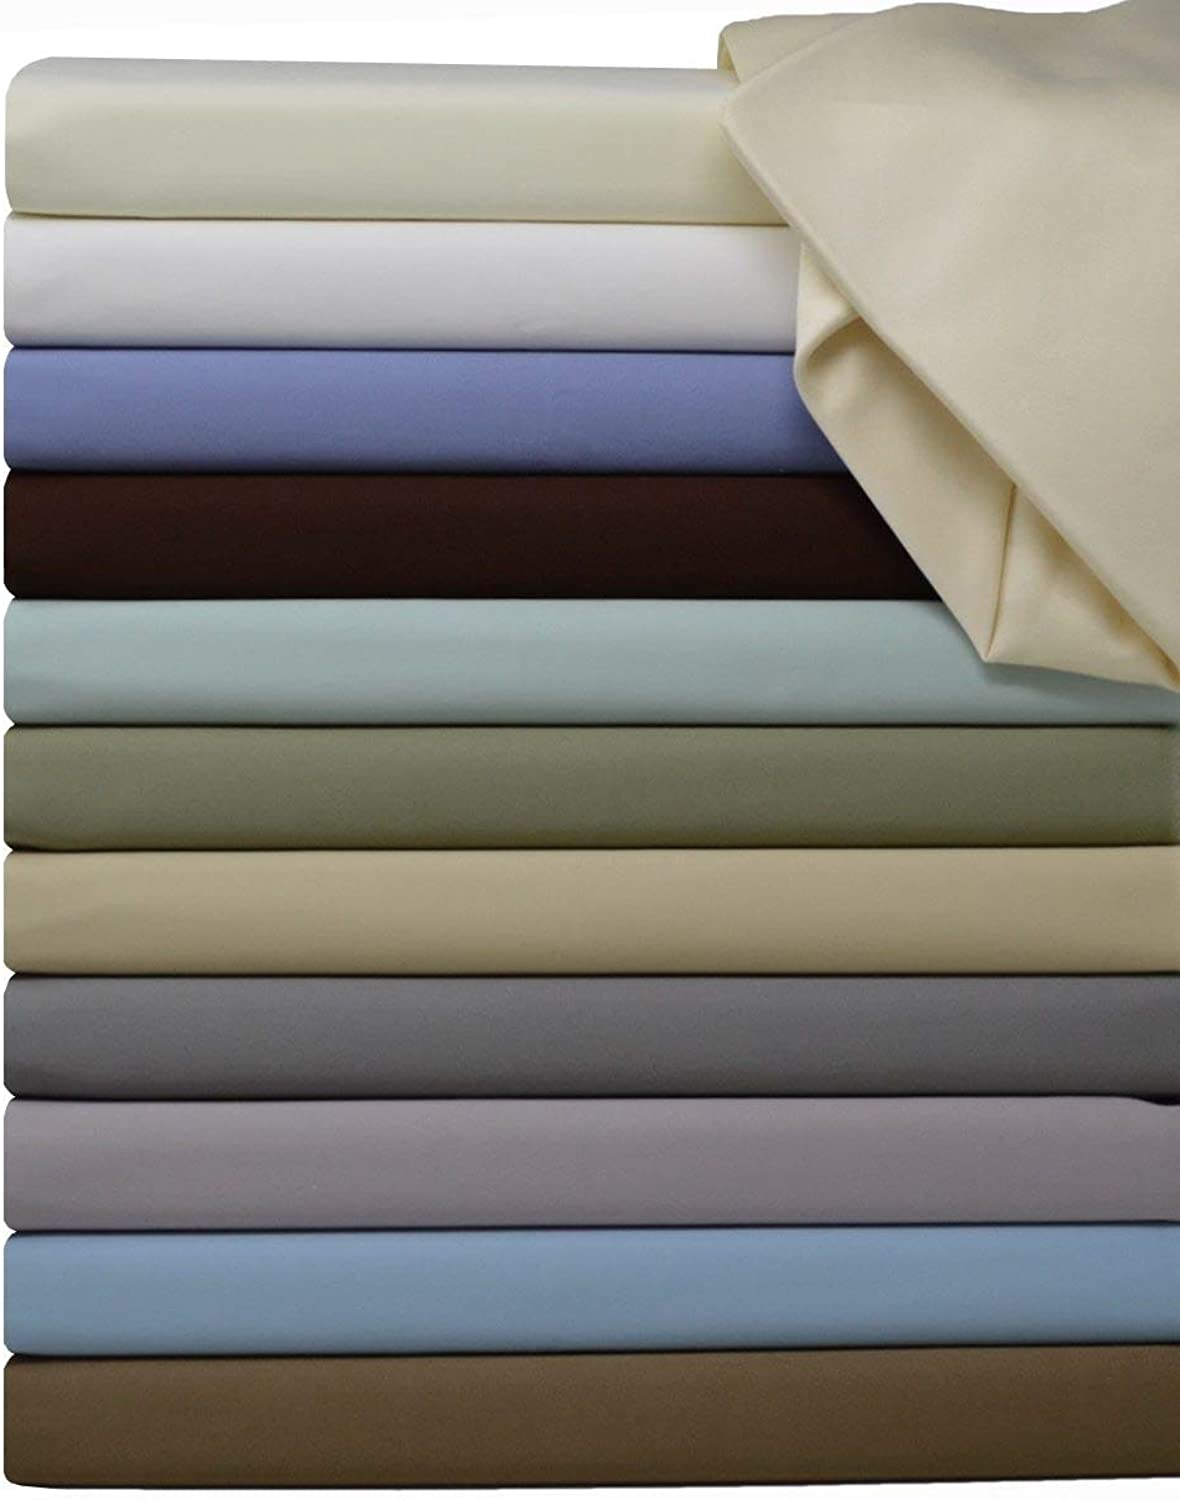 Split-King  Adjustable King Bed Sheets 5PC Solid White 100% Cotton 600-Thread-Count, Deep Pocket